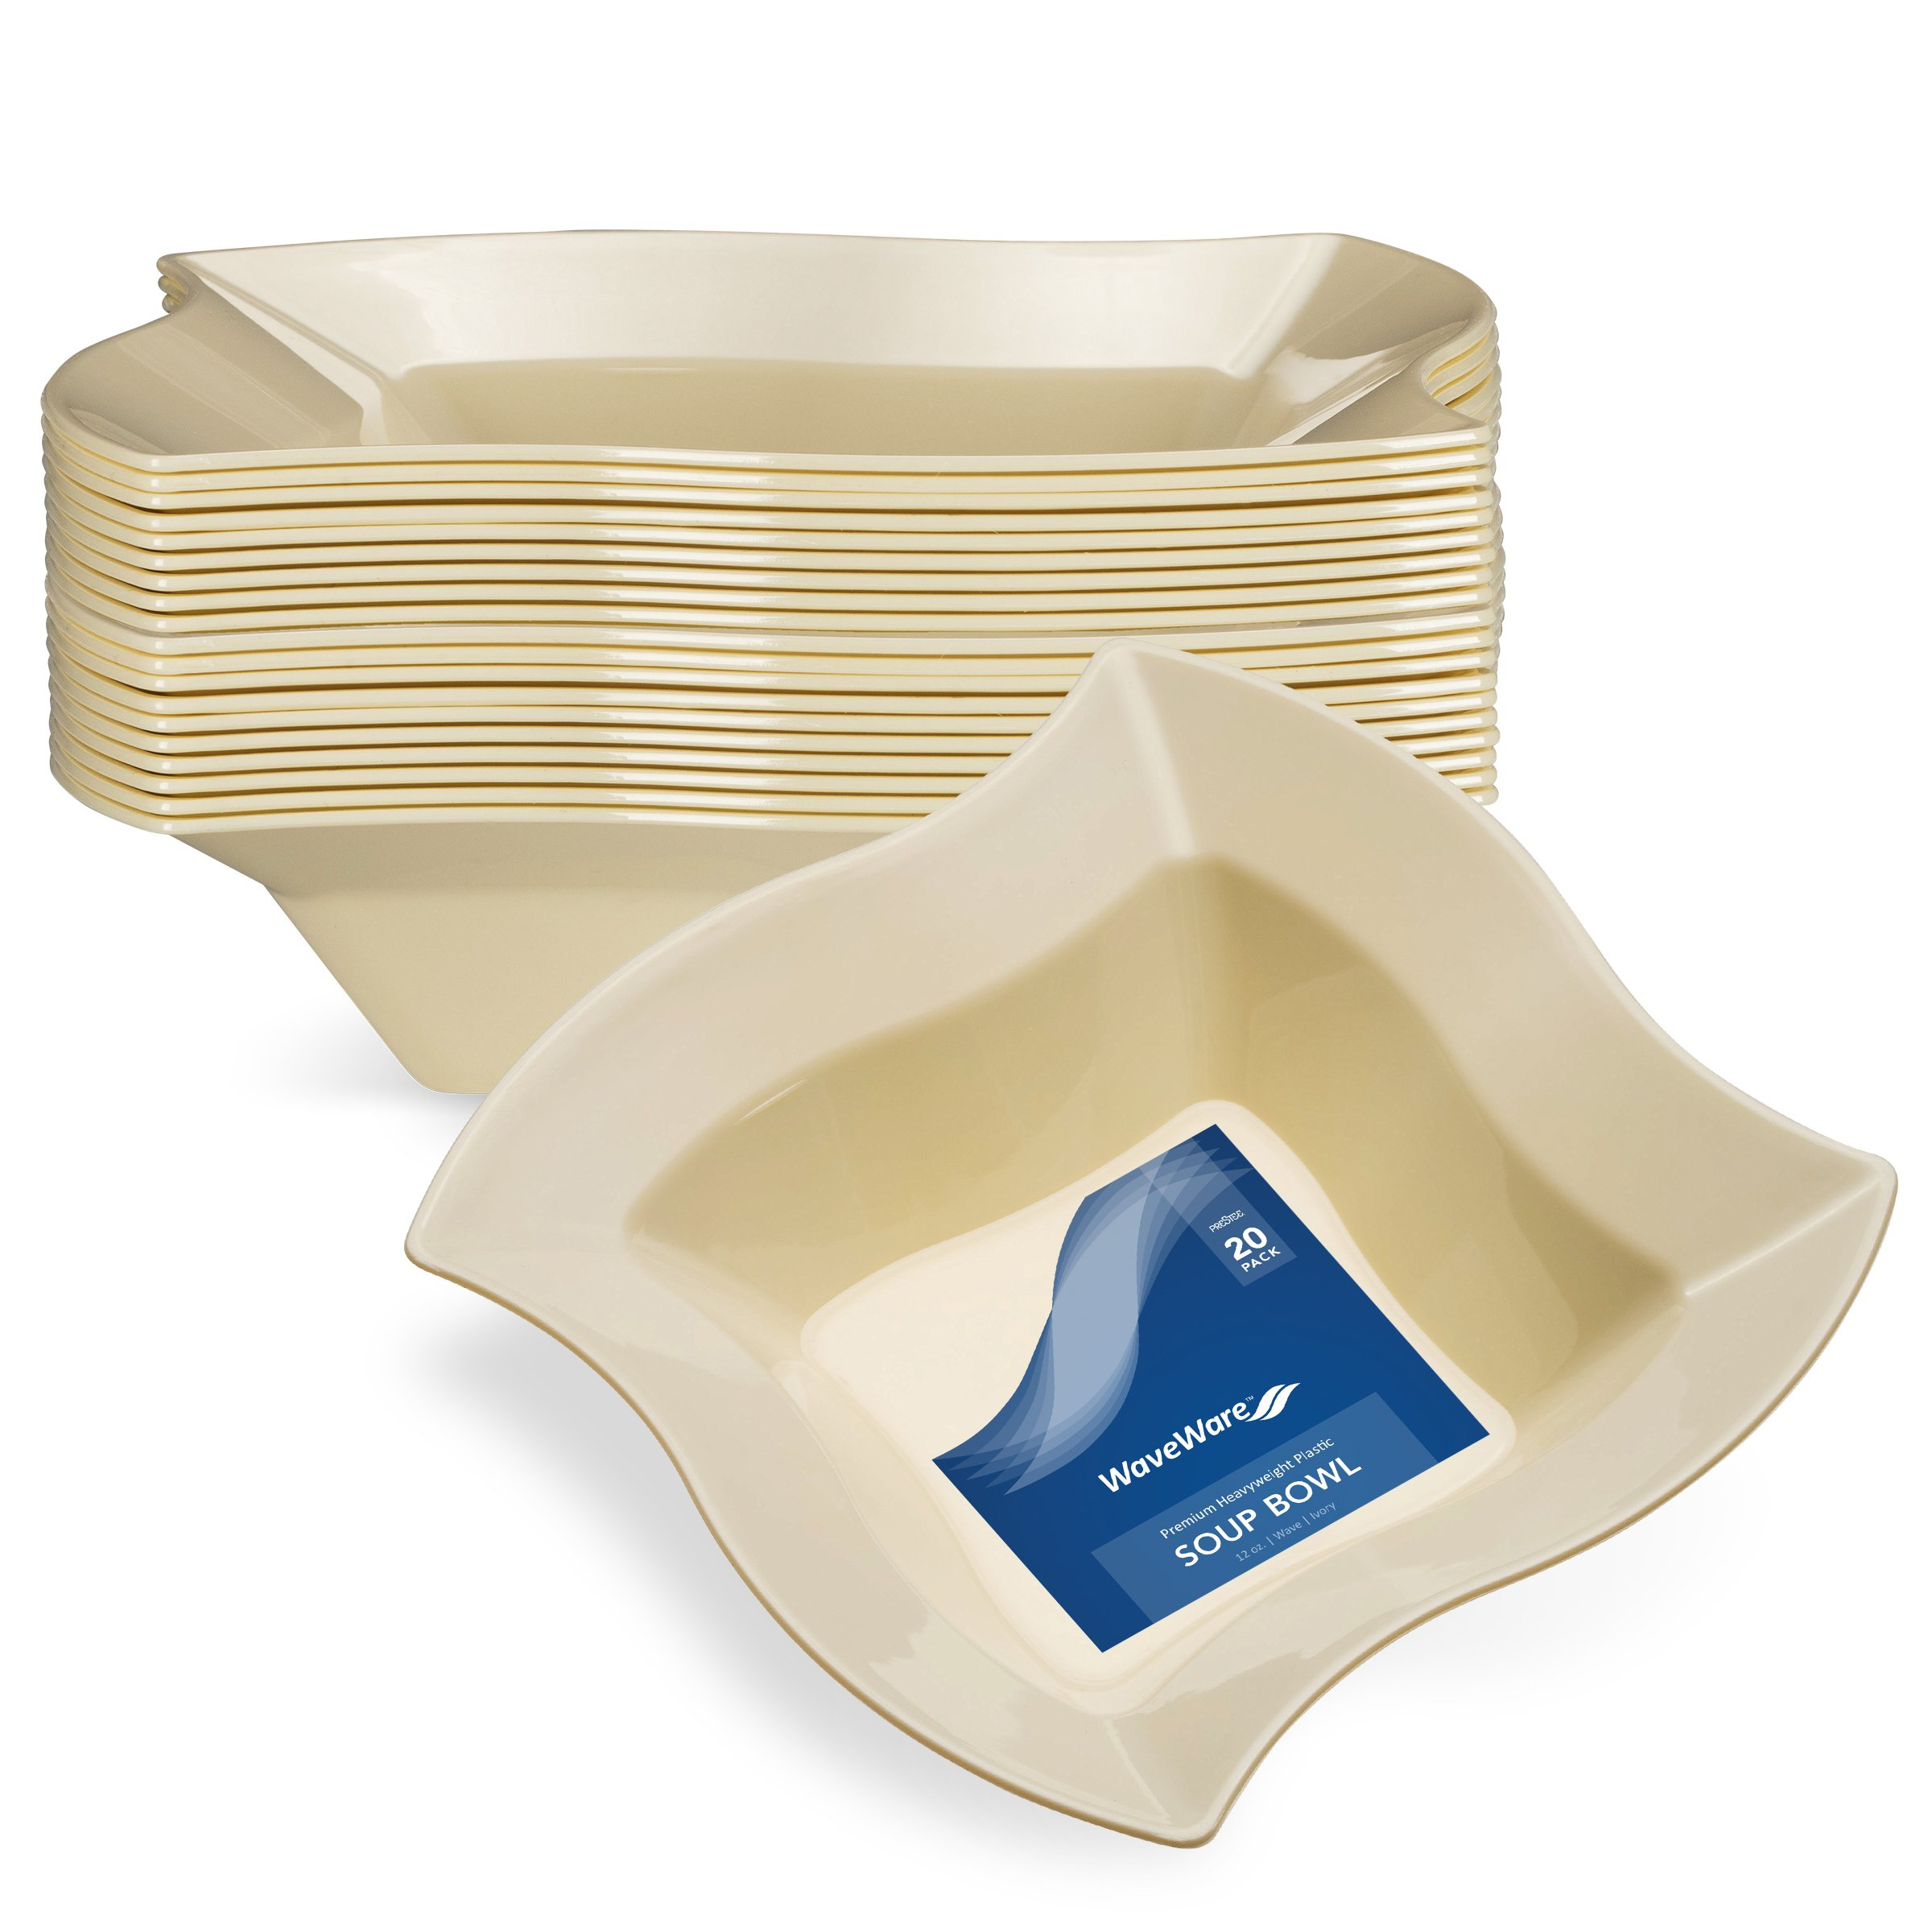 WAVEWARE PLASTIC PARTY DISPOSABLE BOWLS | 12 Ounce Ivory Hard Square Wedding Soup Bowls, 20 Ct | Elegant & Fancy Heavy Duty Hard Party Supplies Plates for all Holidays & Occasions by Prestee